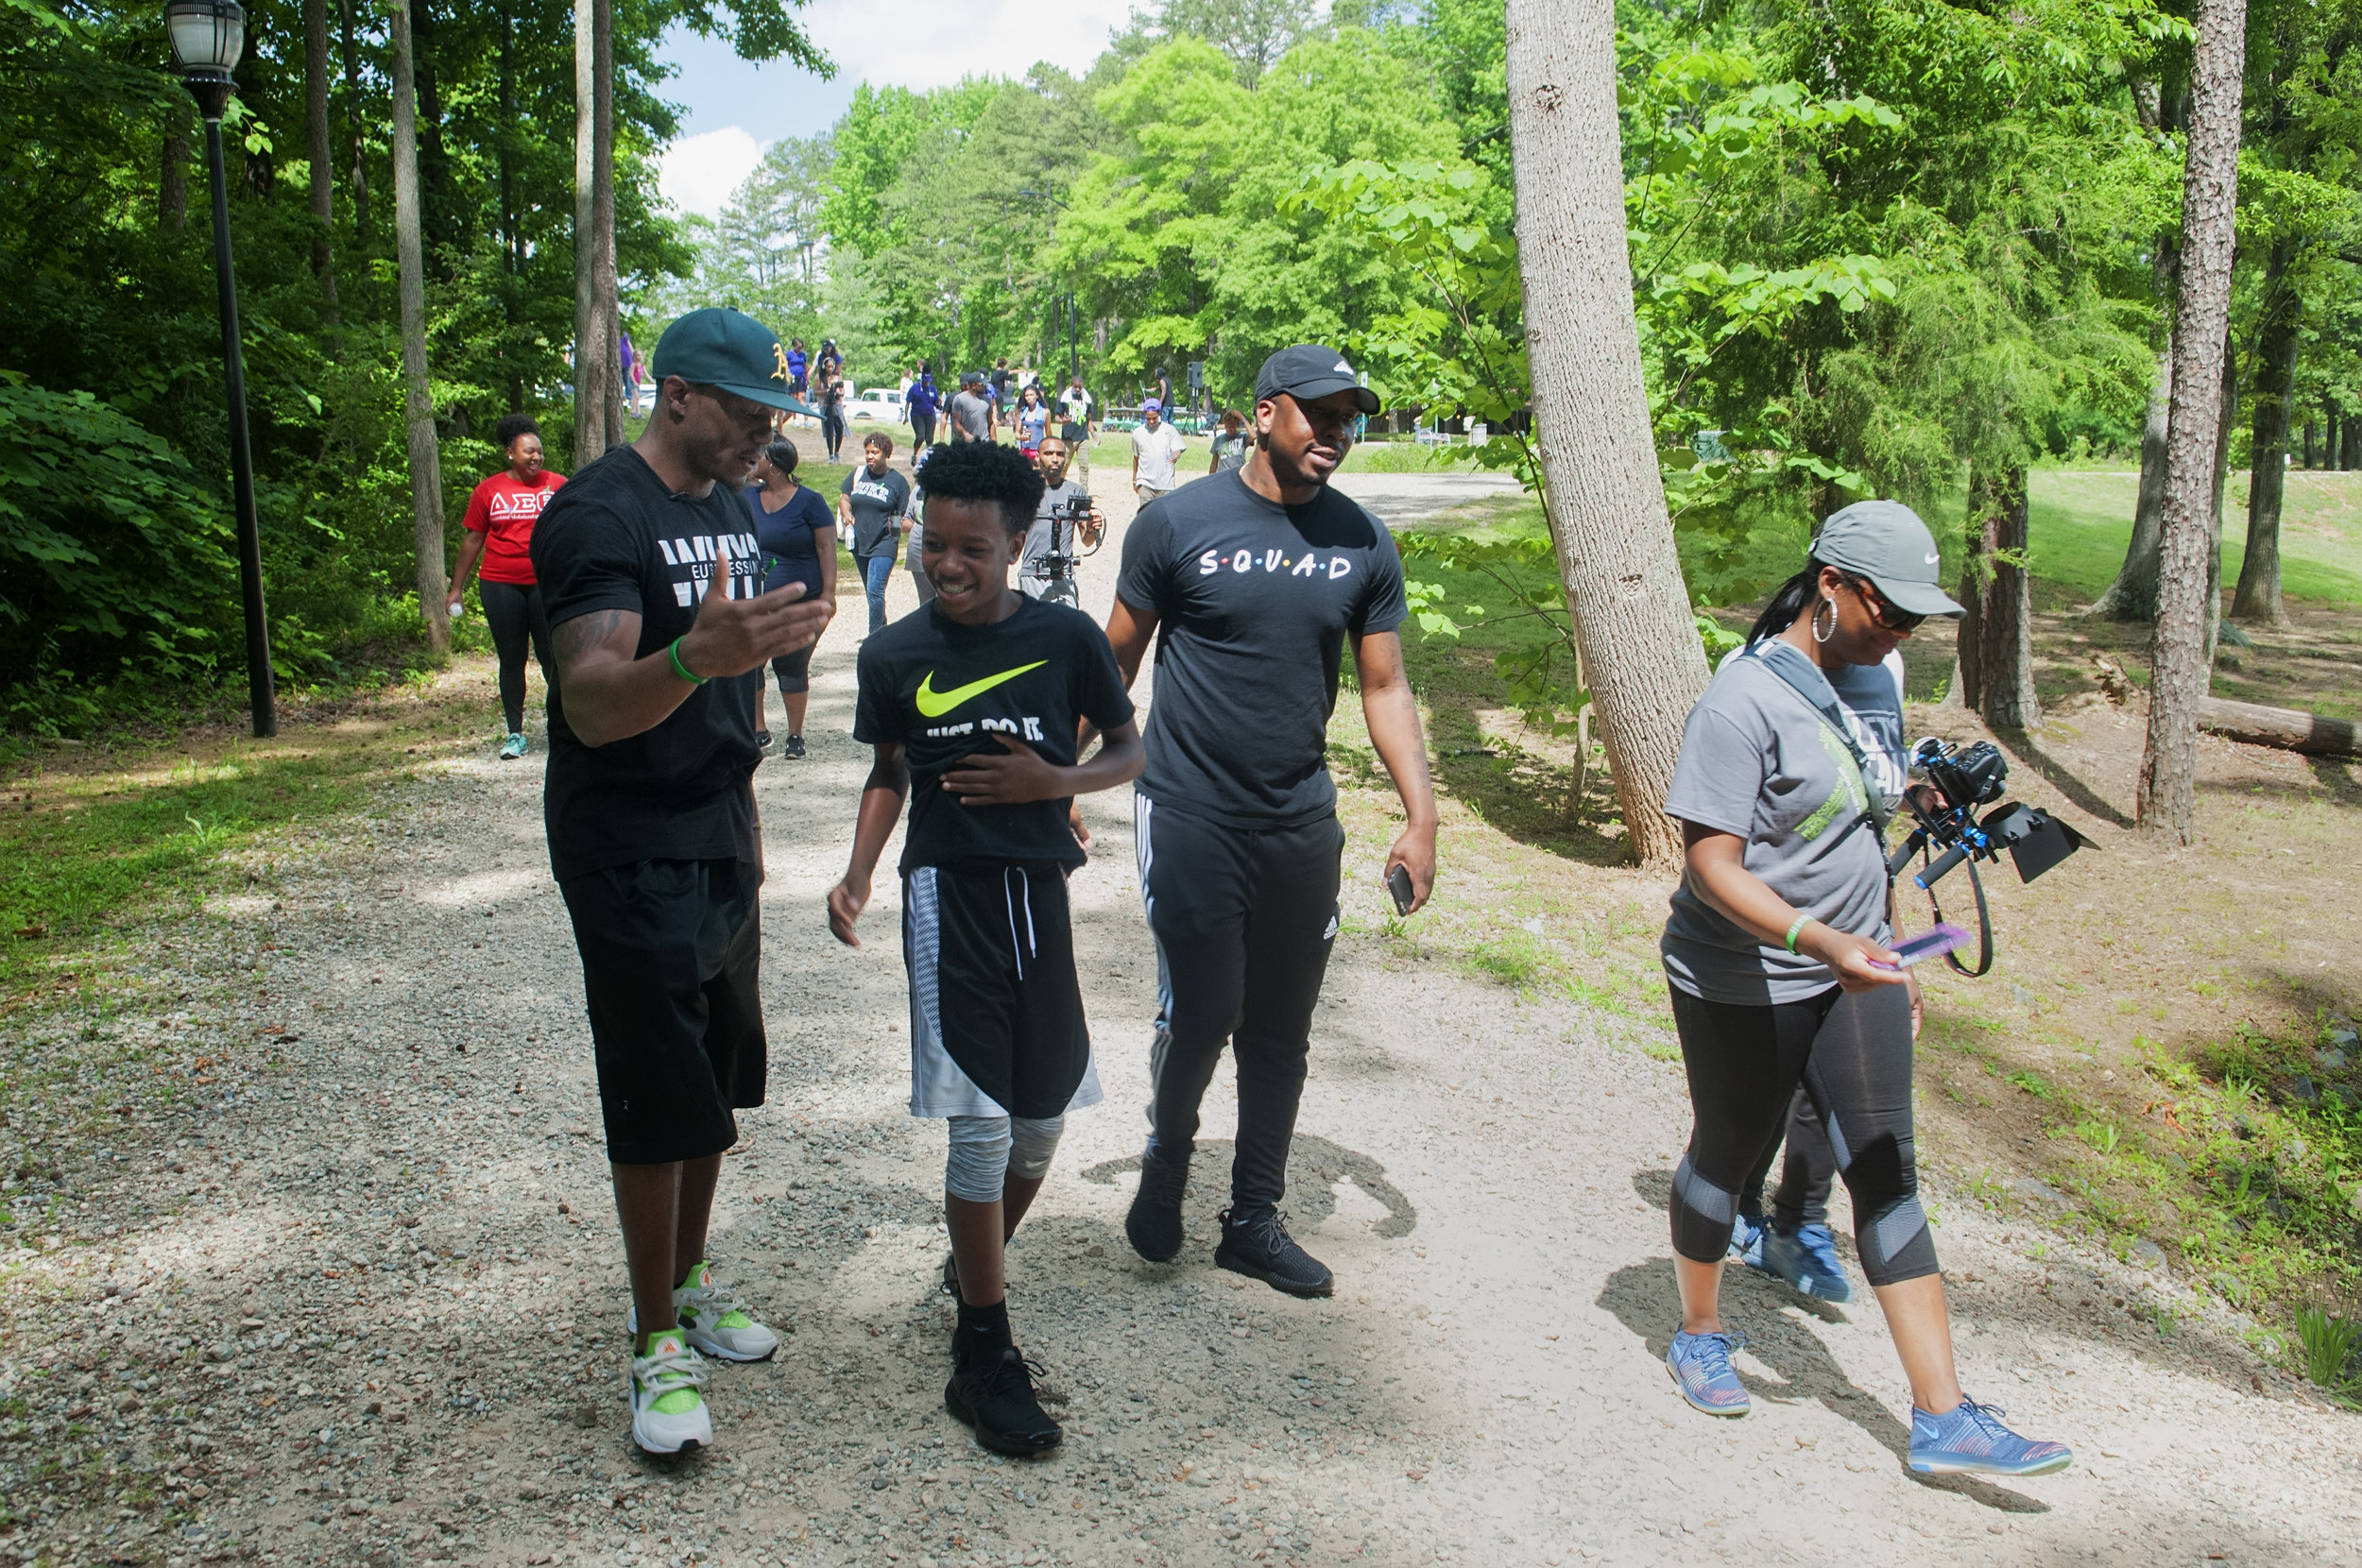 2nd Annual Let's Talk About It Mental Health Awareness Walk @ Park Rd Park 5-20-17 by Jon Strayhorn 161.jpg